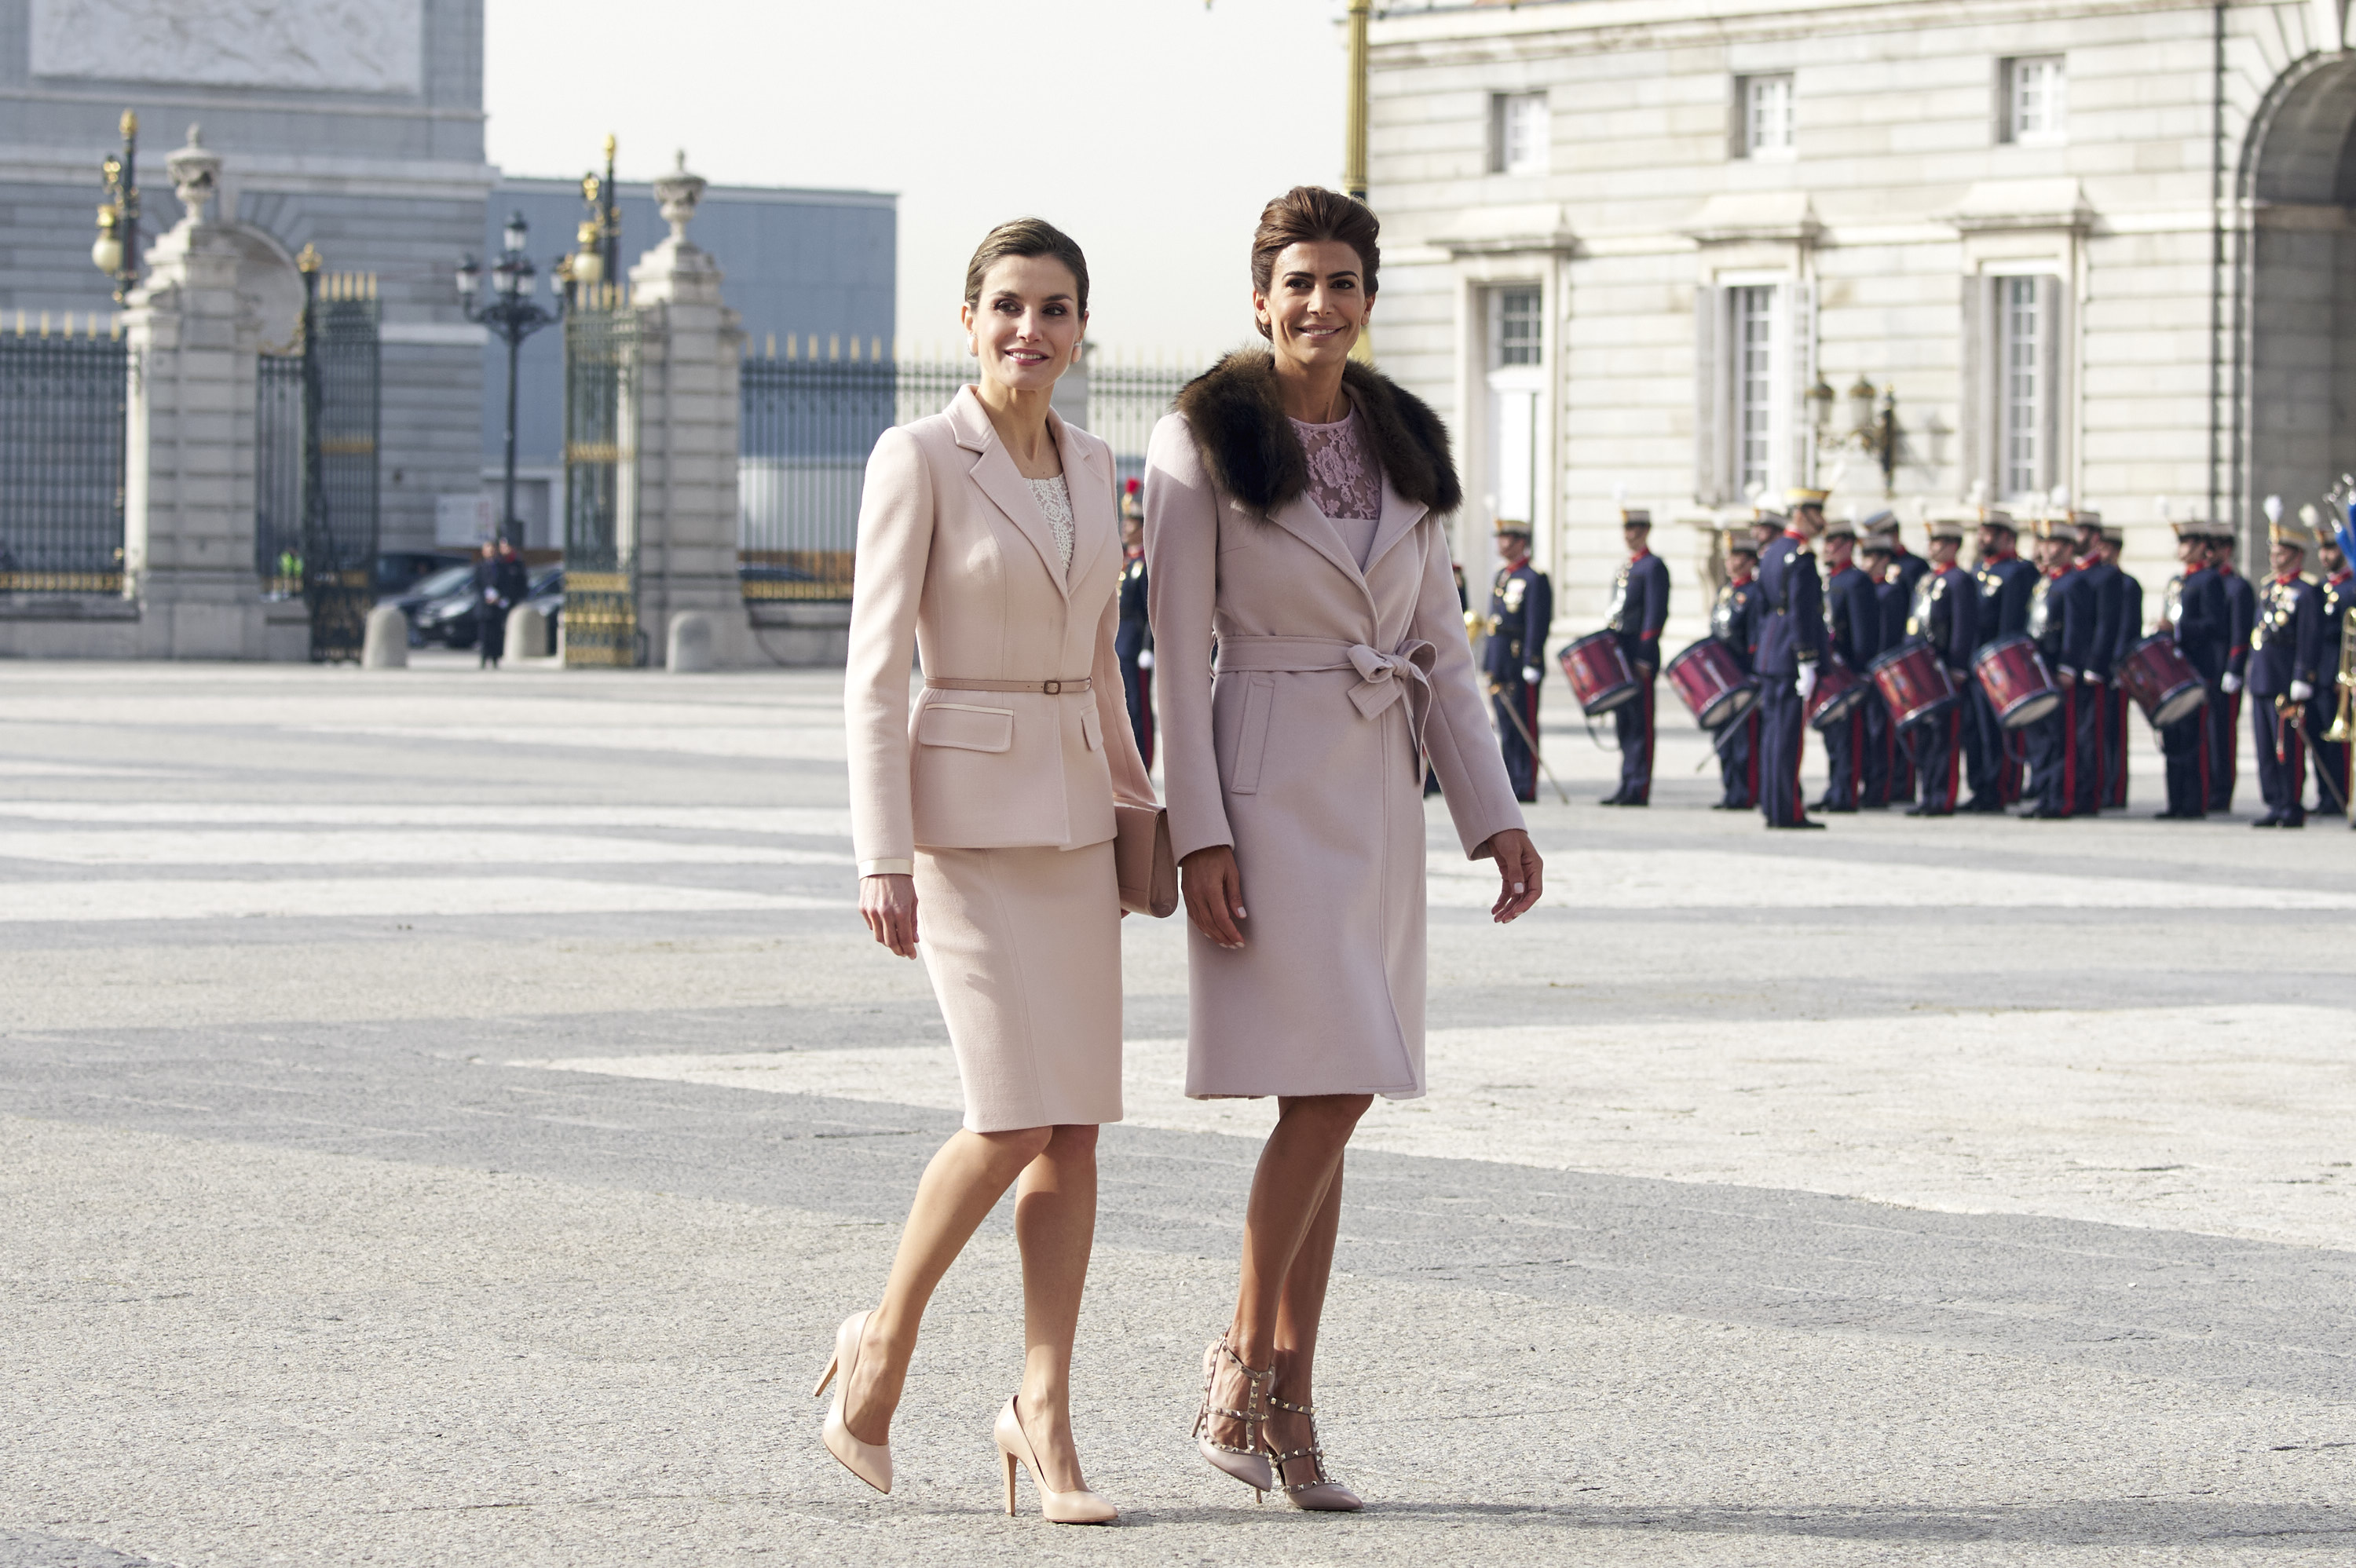 Letizia Ortiz e Juliana Awanda: regina e first lady di stile